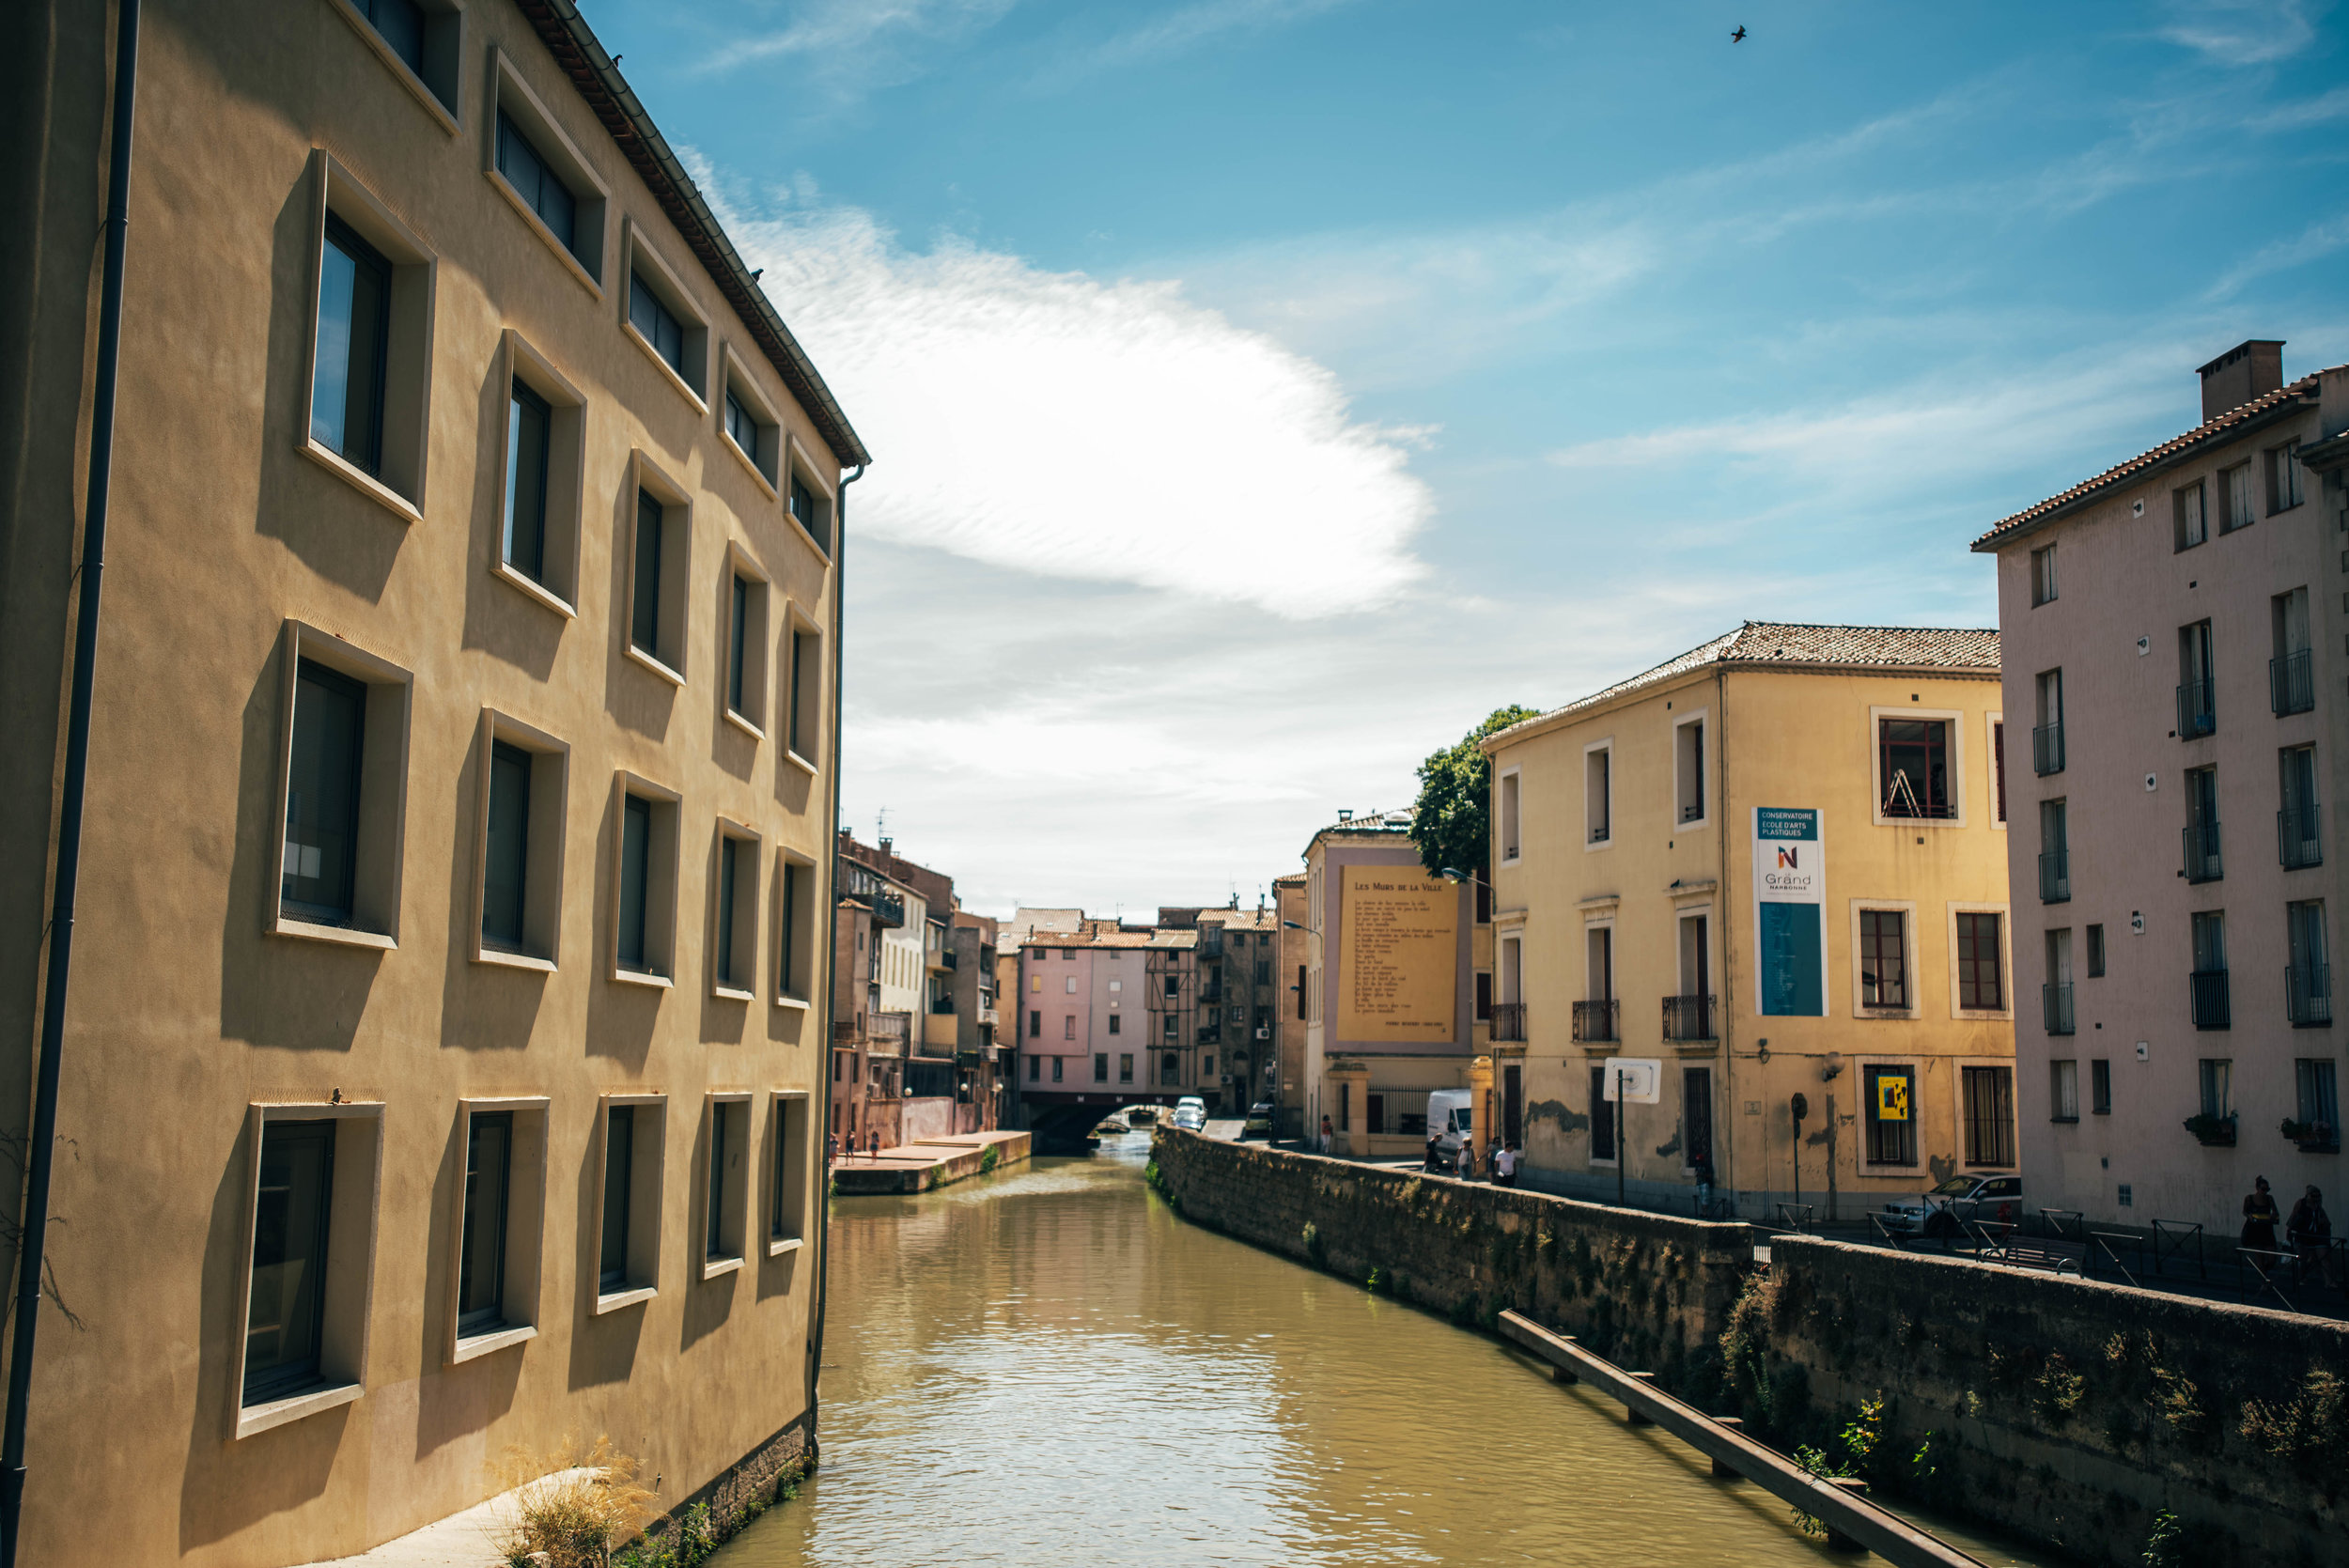 Canal at Narbonne France Essex UK Documentary Photographer